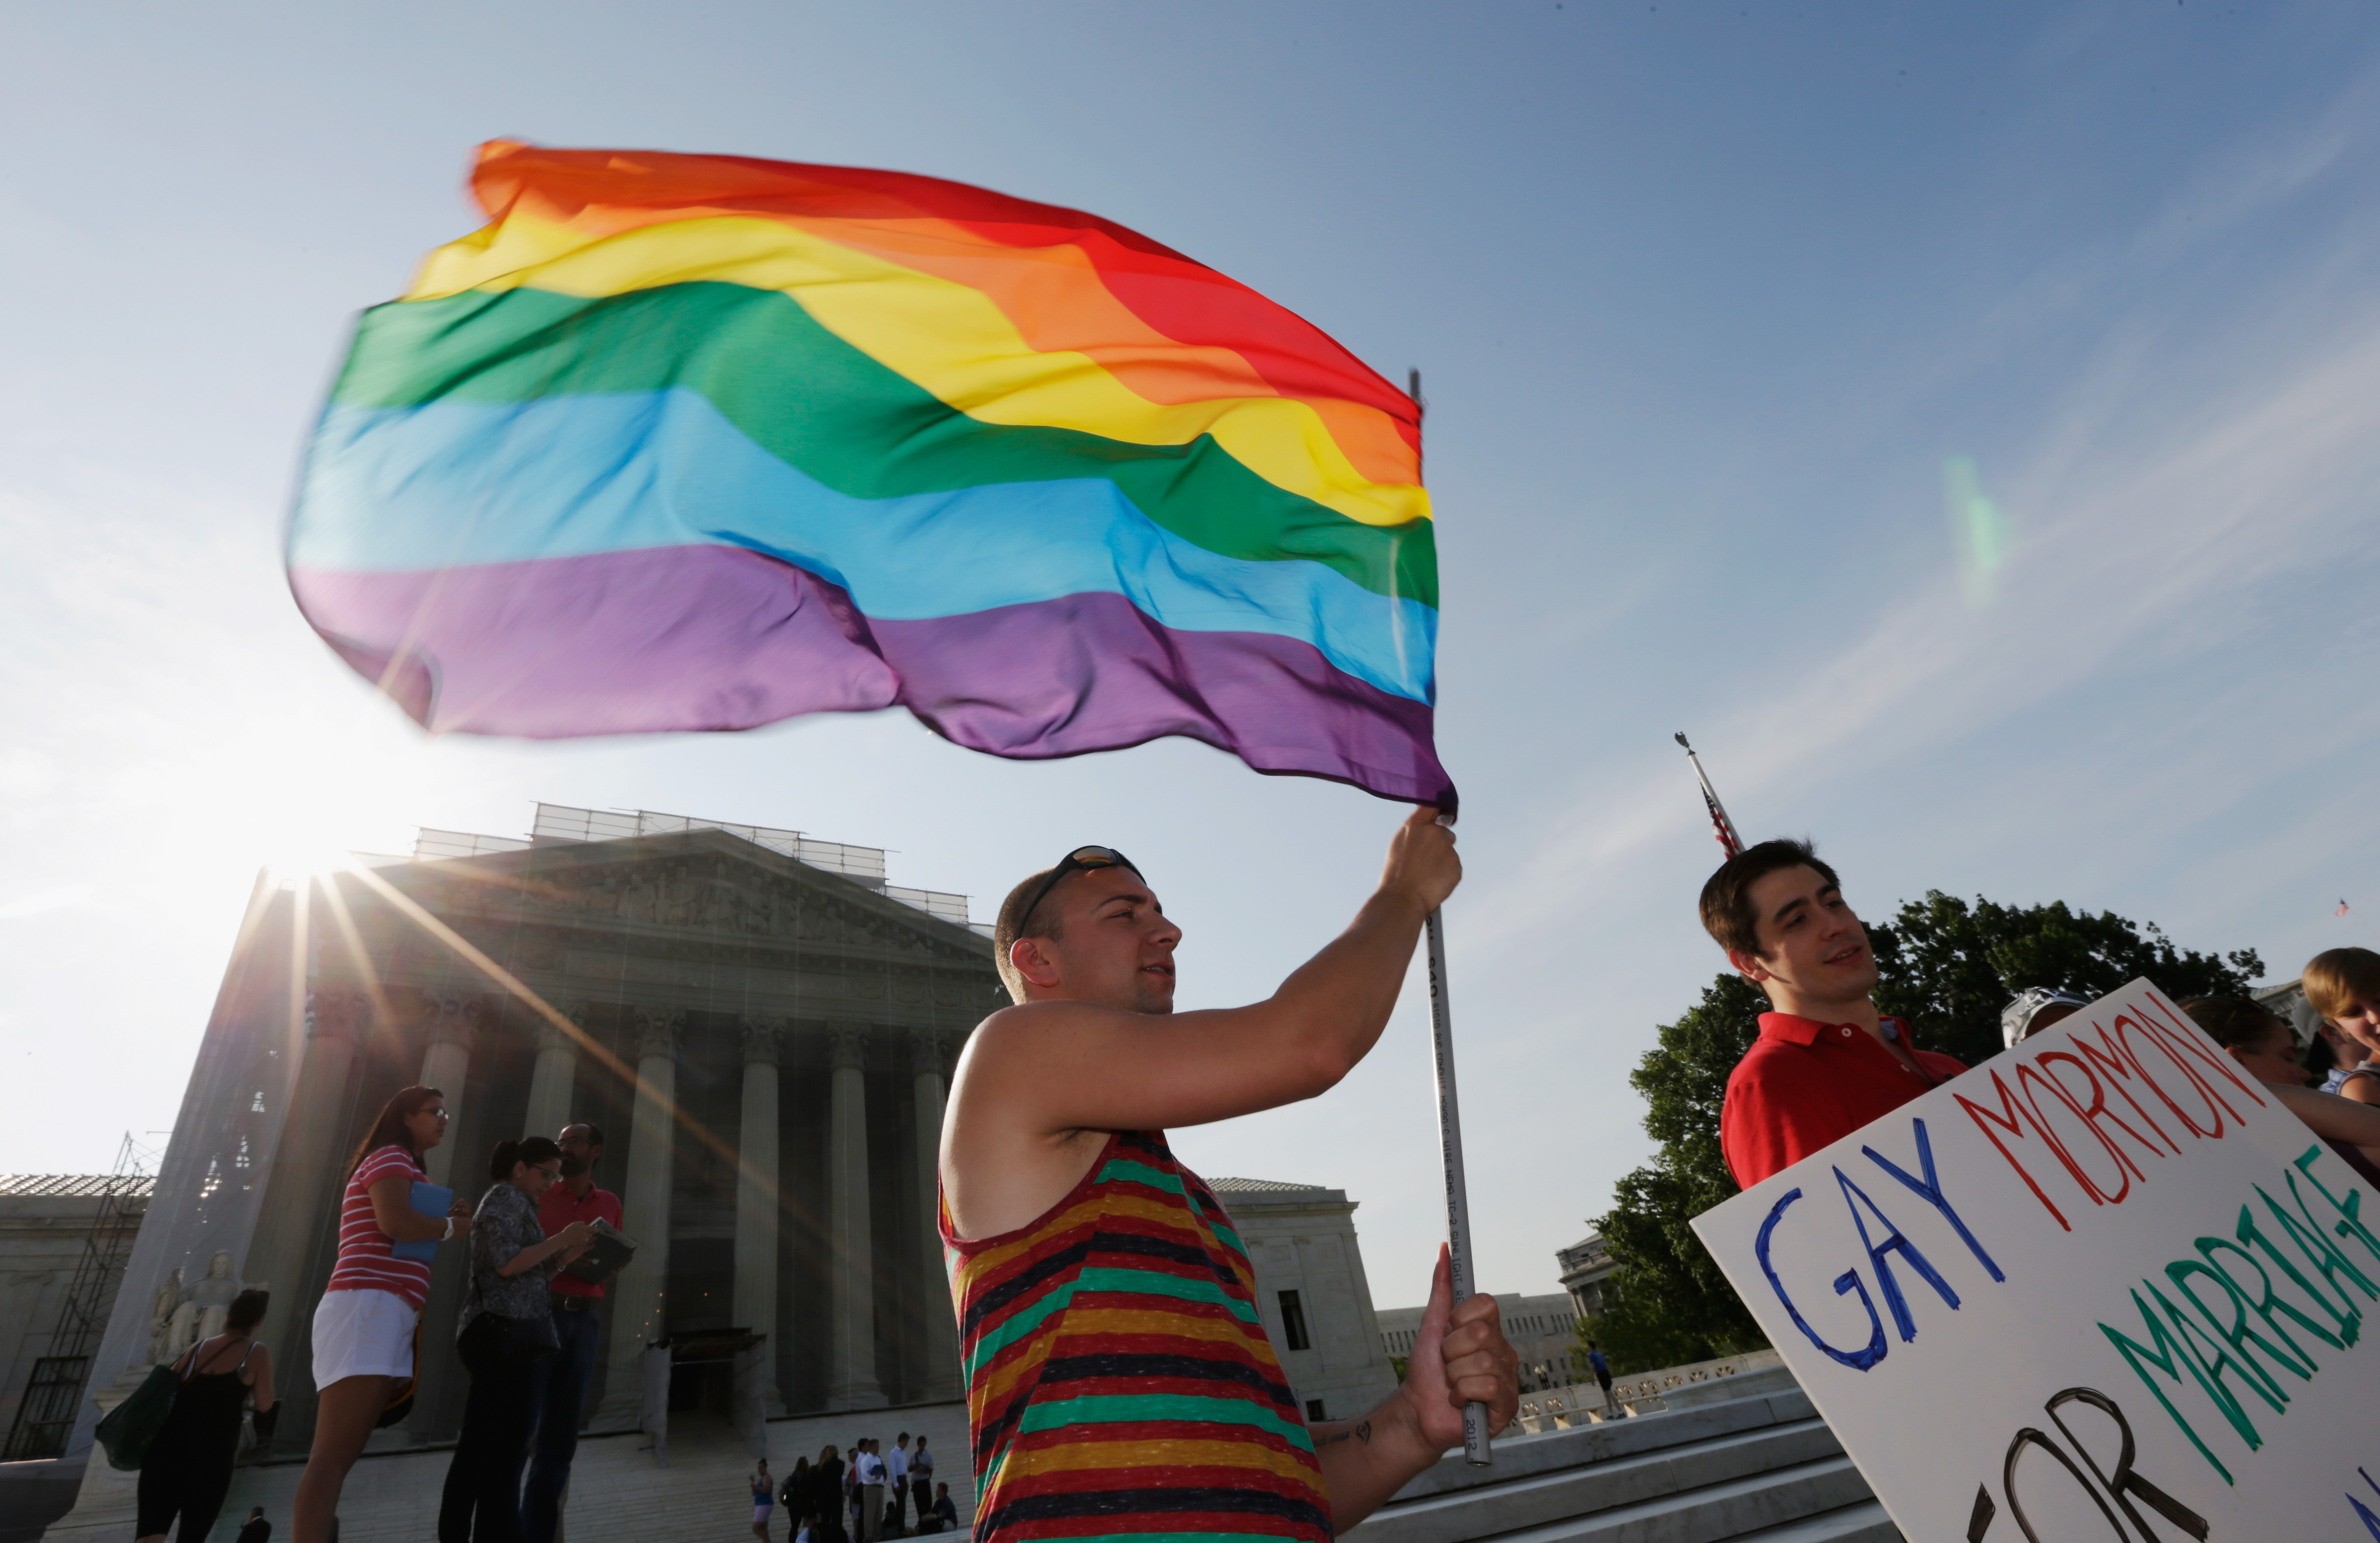 Gay rights supporter Vin Testa waves a rainbow flag outside the U.S. Supreme Court building on June 26, 2013 in Washington.